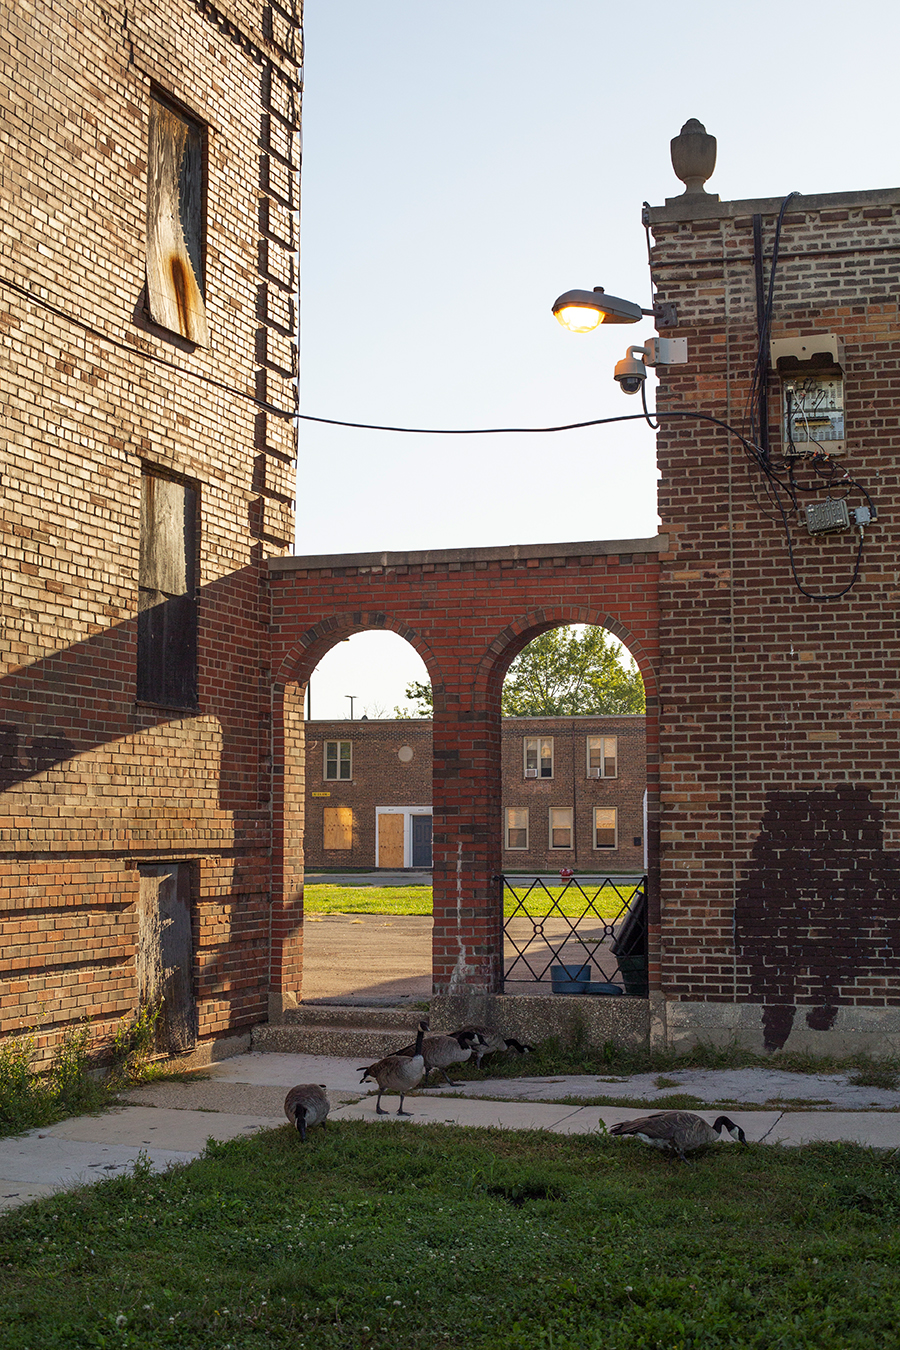 For years Lathrop was neglected by the Chicago Housing Authority but was on the radar of private developers for its attractive location and historic character.